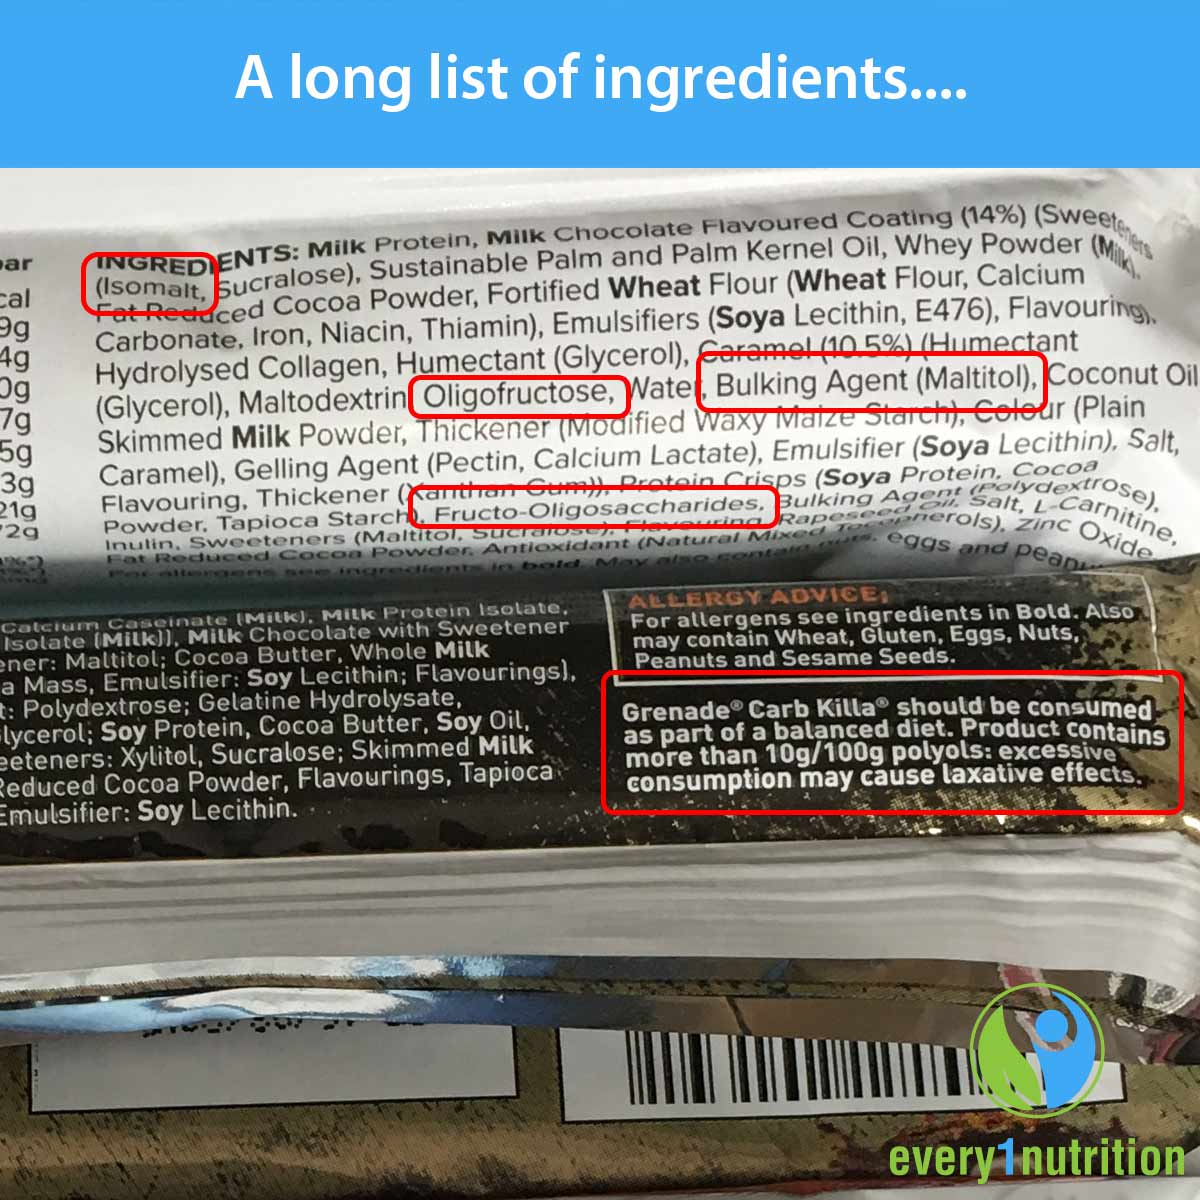 ingredients_list.jpg